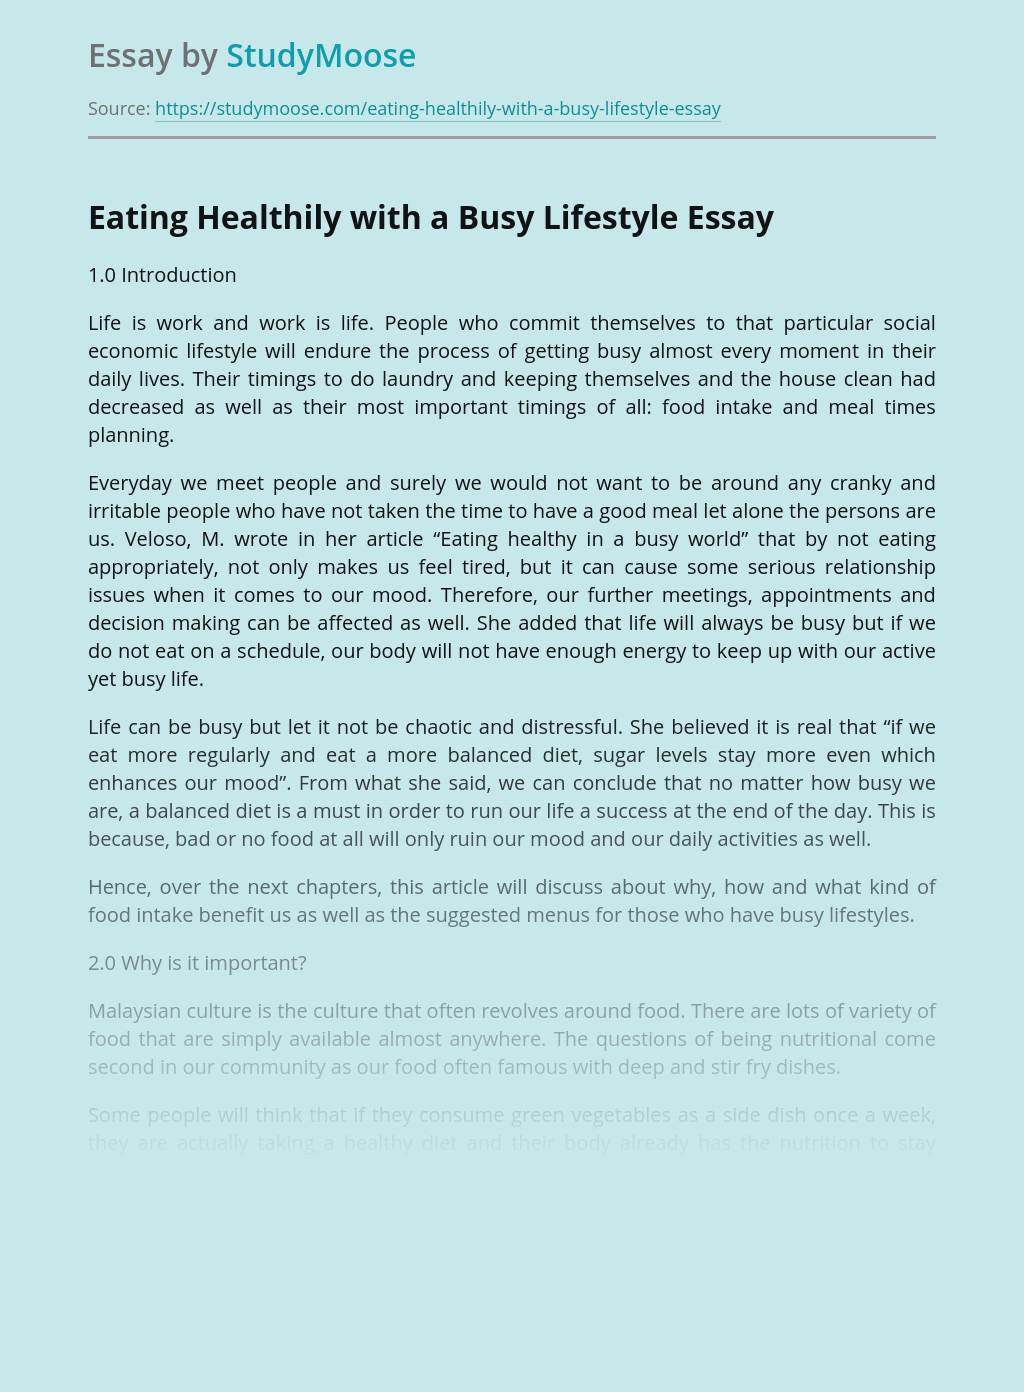 Eating Healthily with a Busy Lifestyle